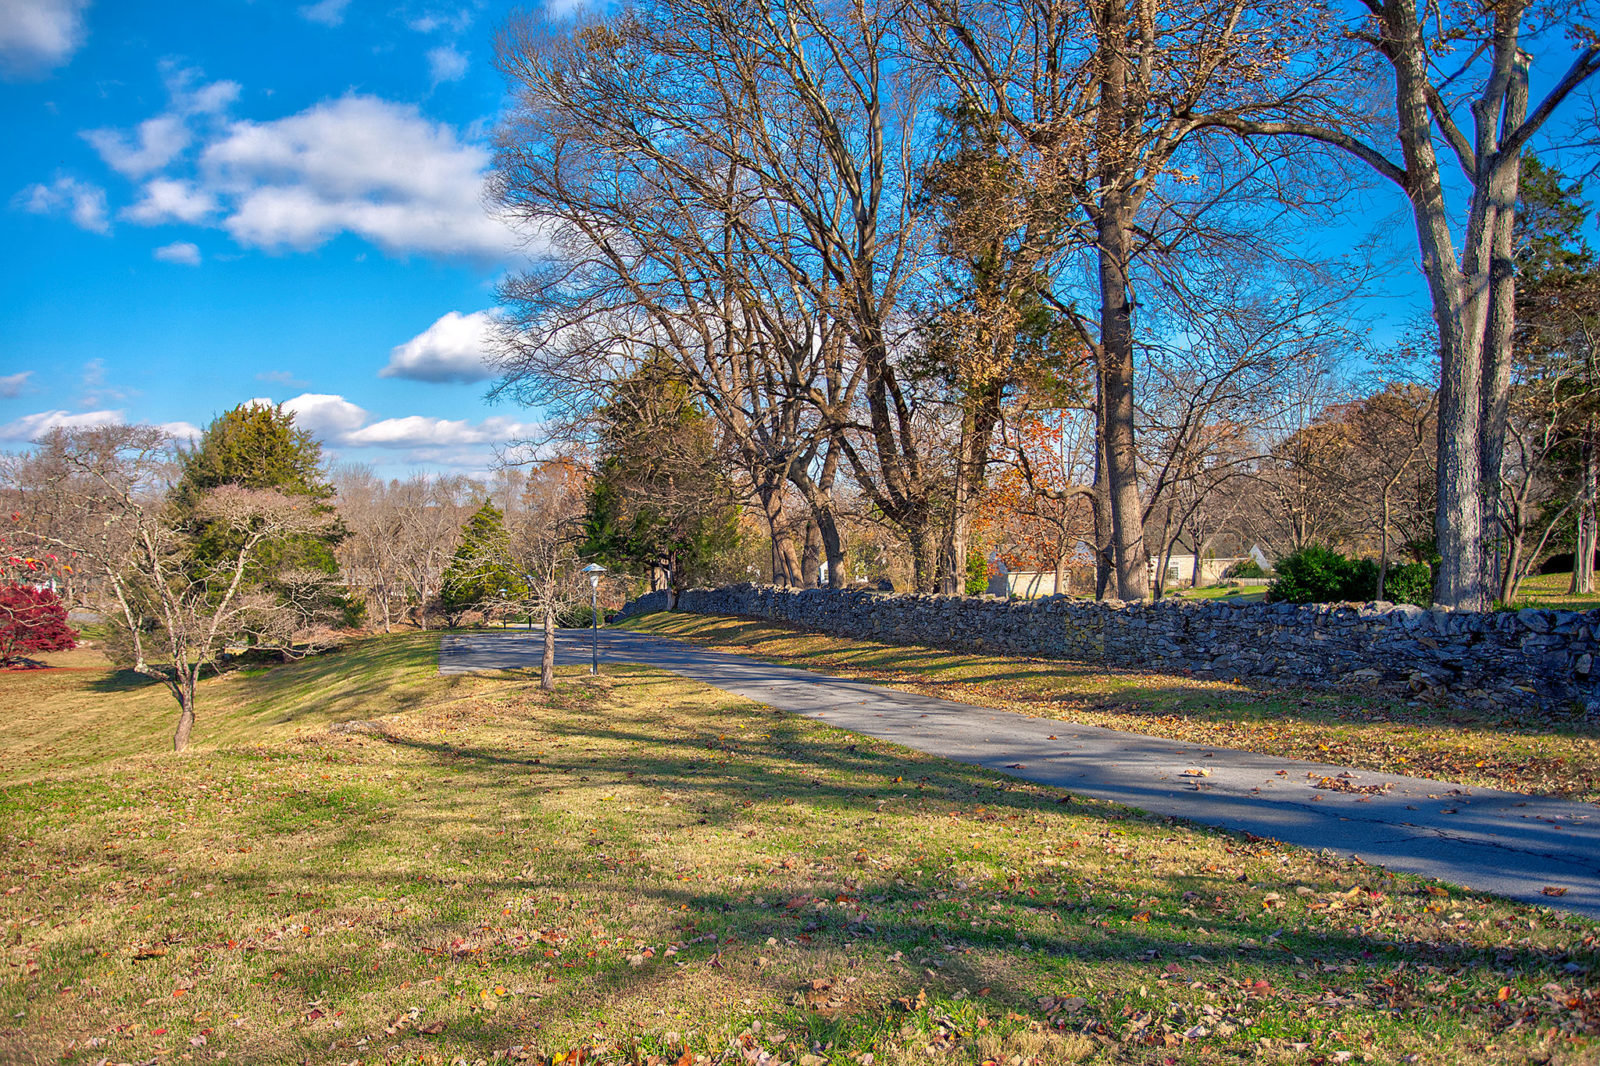 Hand stacked stone walls line the driveway at Carter Hall near Millwood, Virginia.